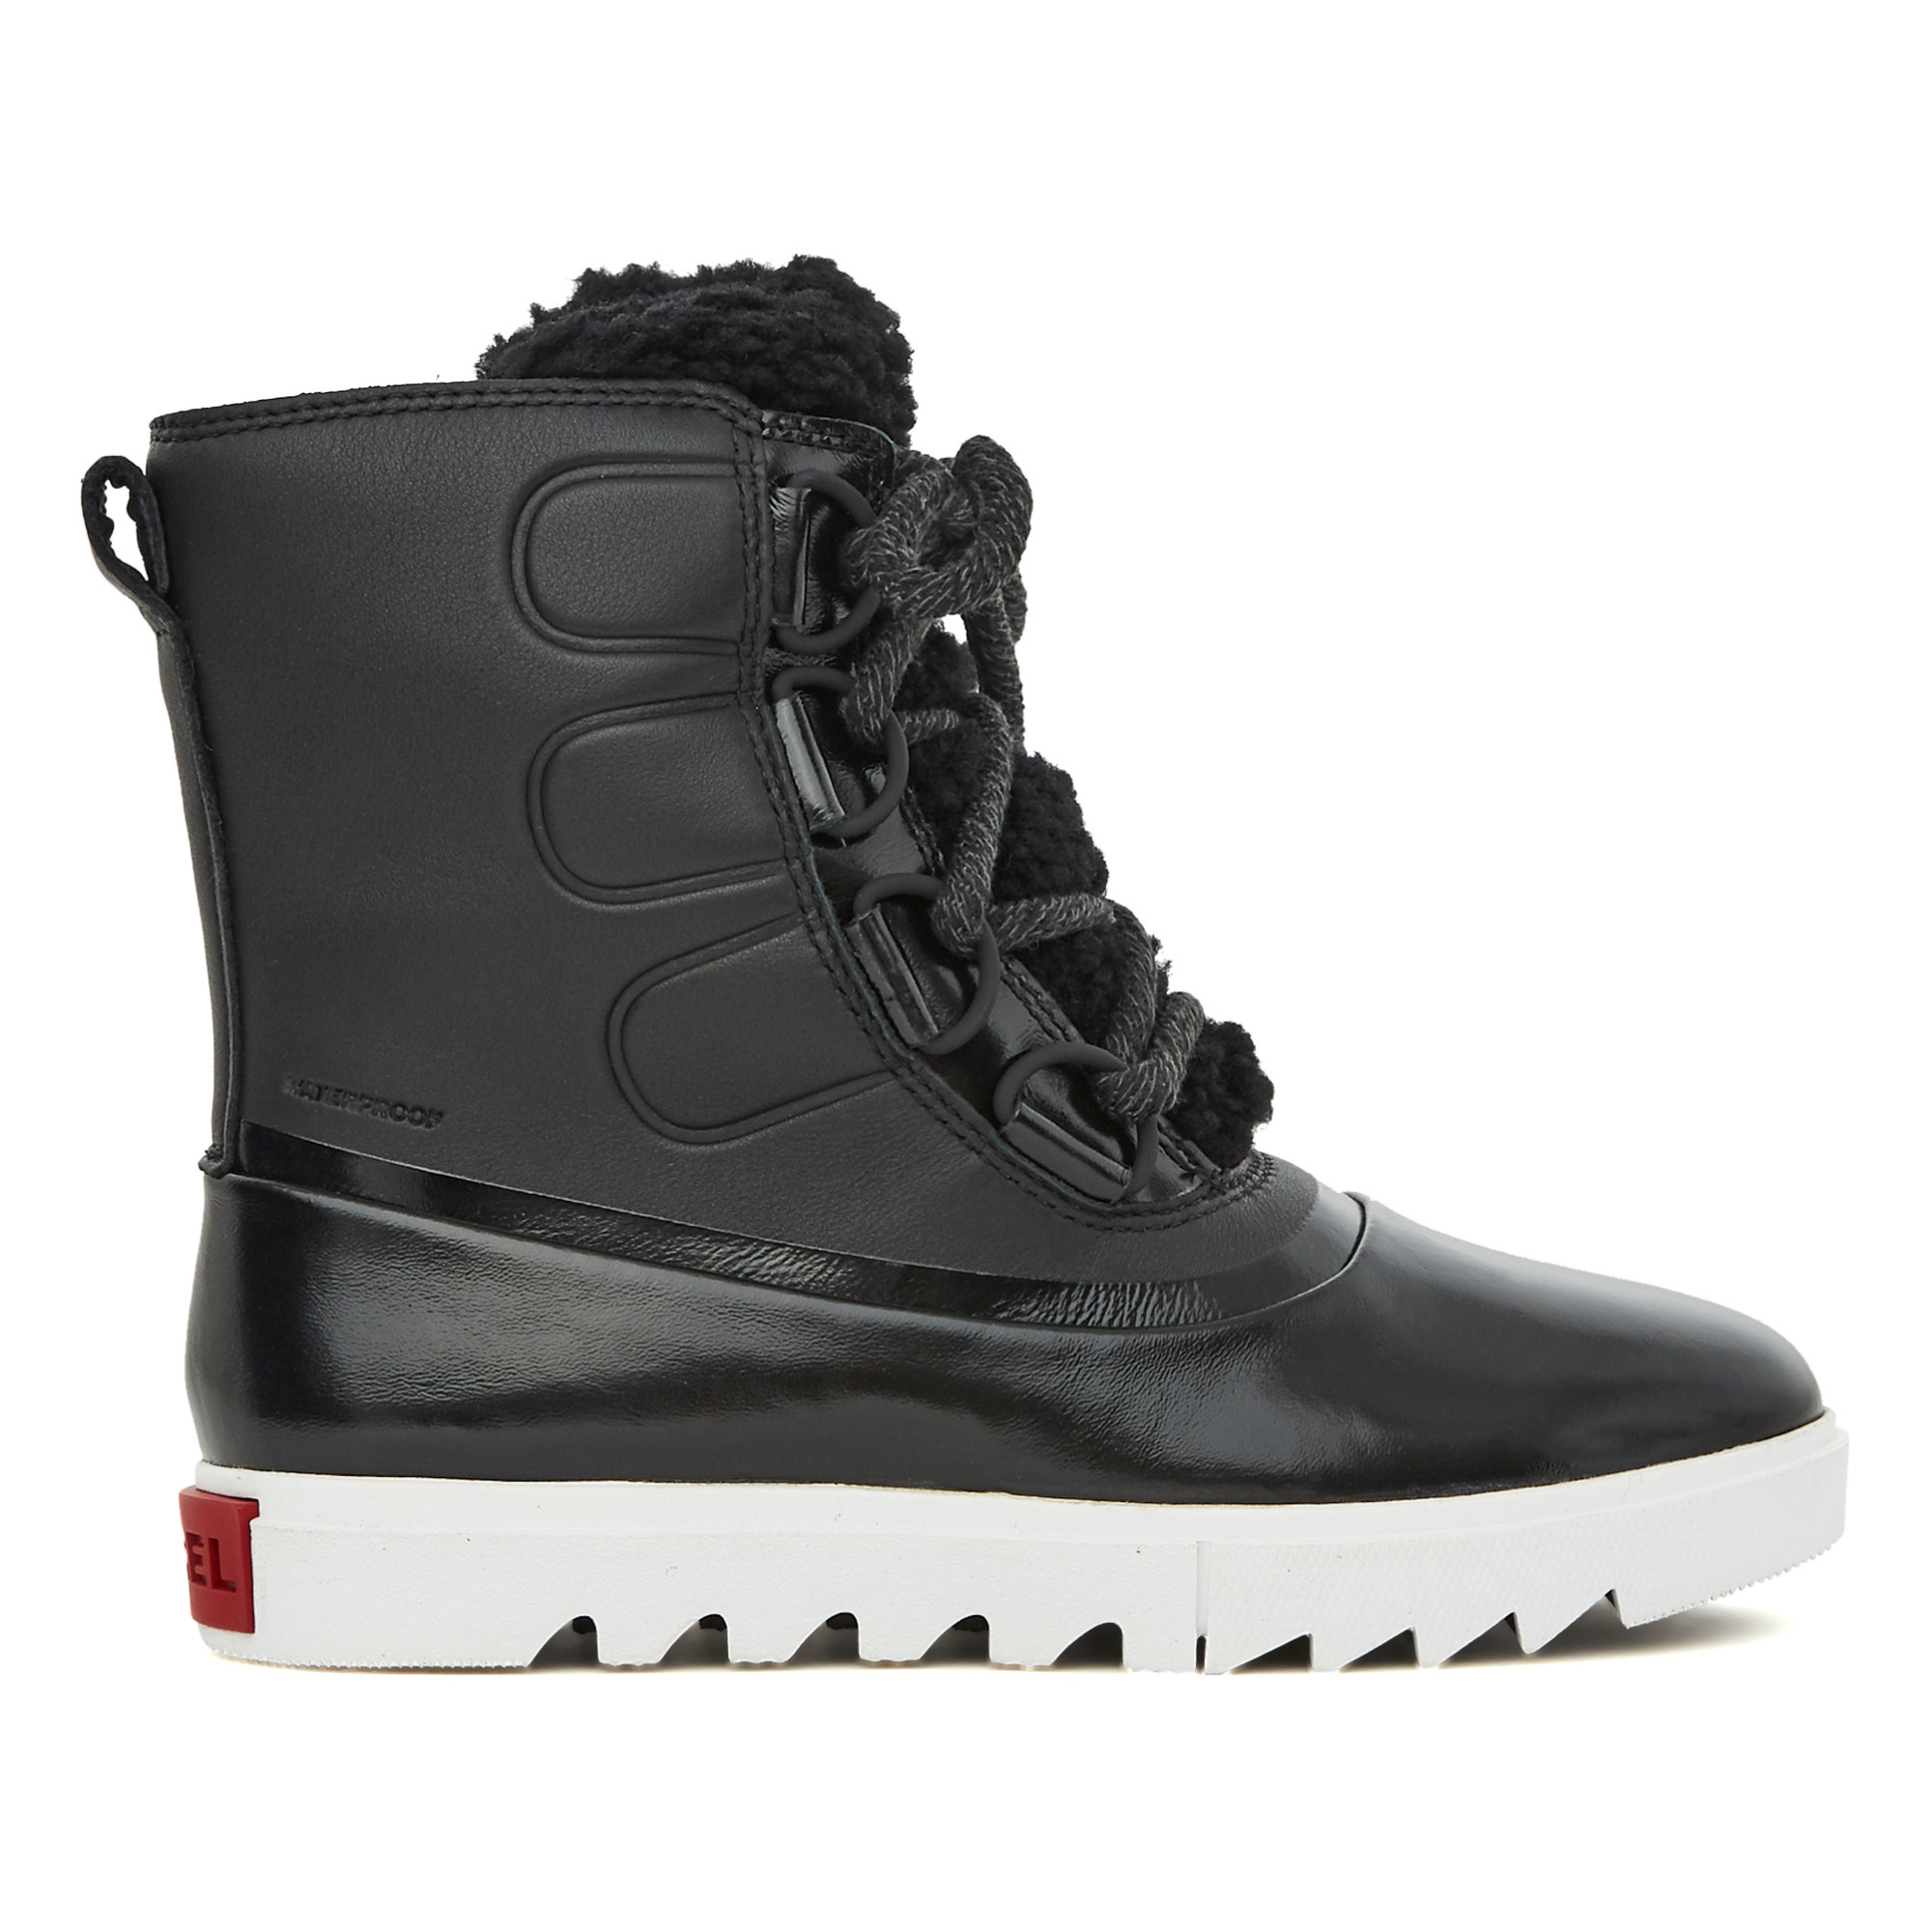 Joan Of Arctic Next Lite Boots - Women's Collection